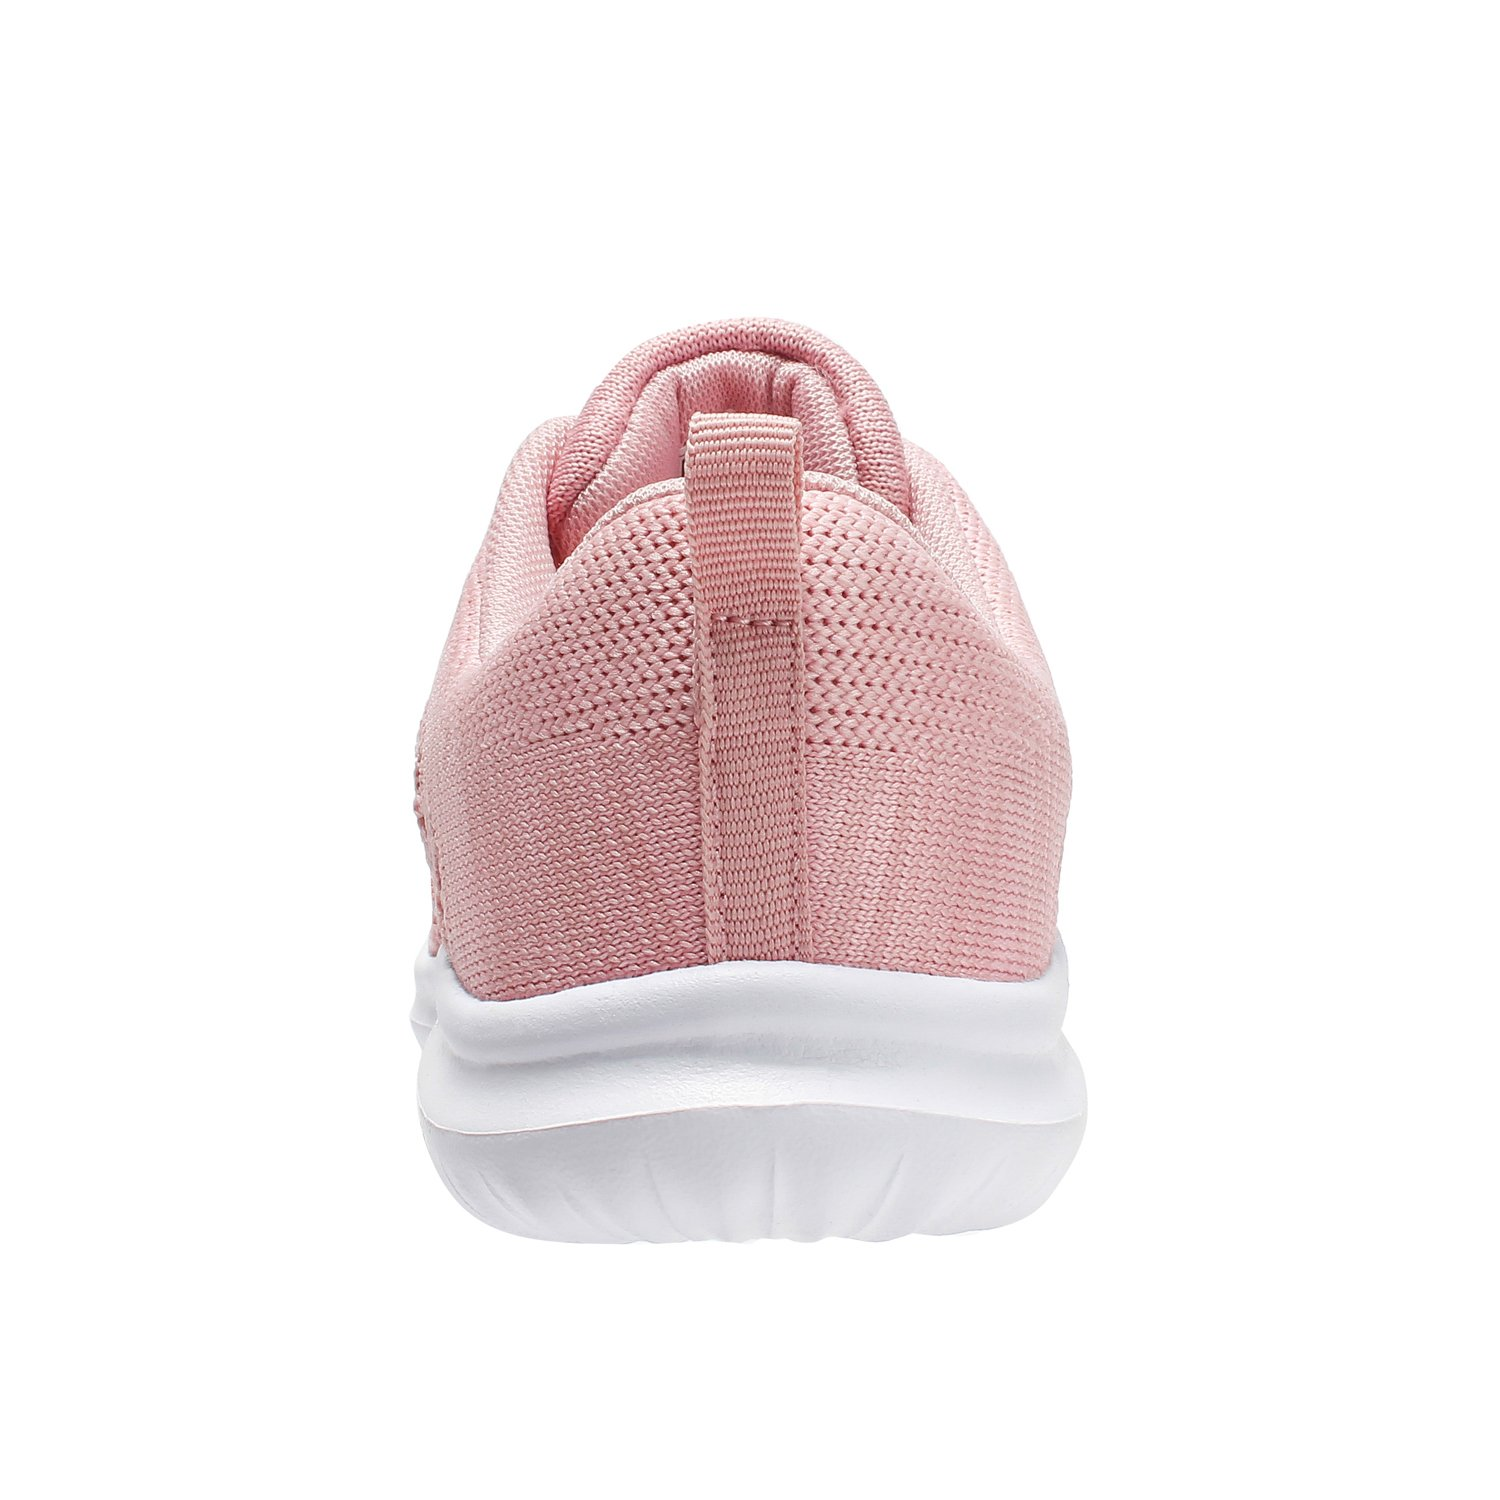 YILAN Women's Fashion Sneakers Casual Sport Shoes B079FF6MCC 6 B(M) US|Pink-2